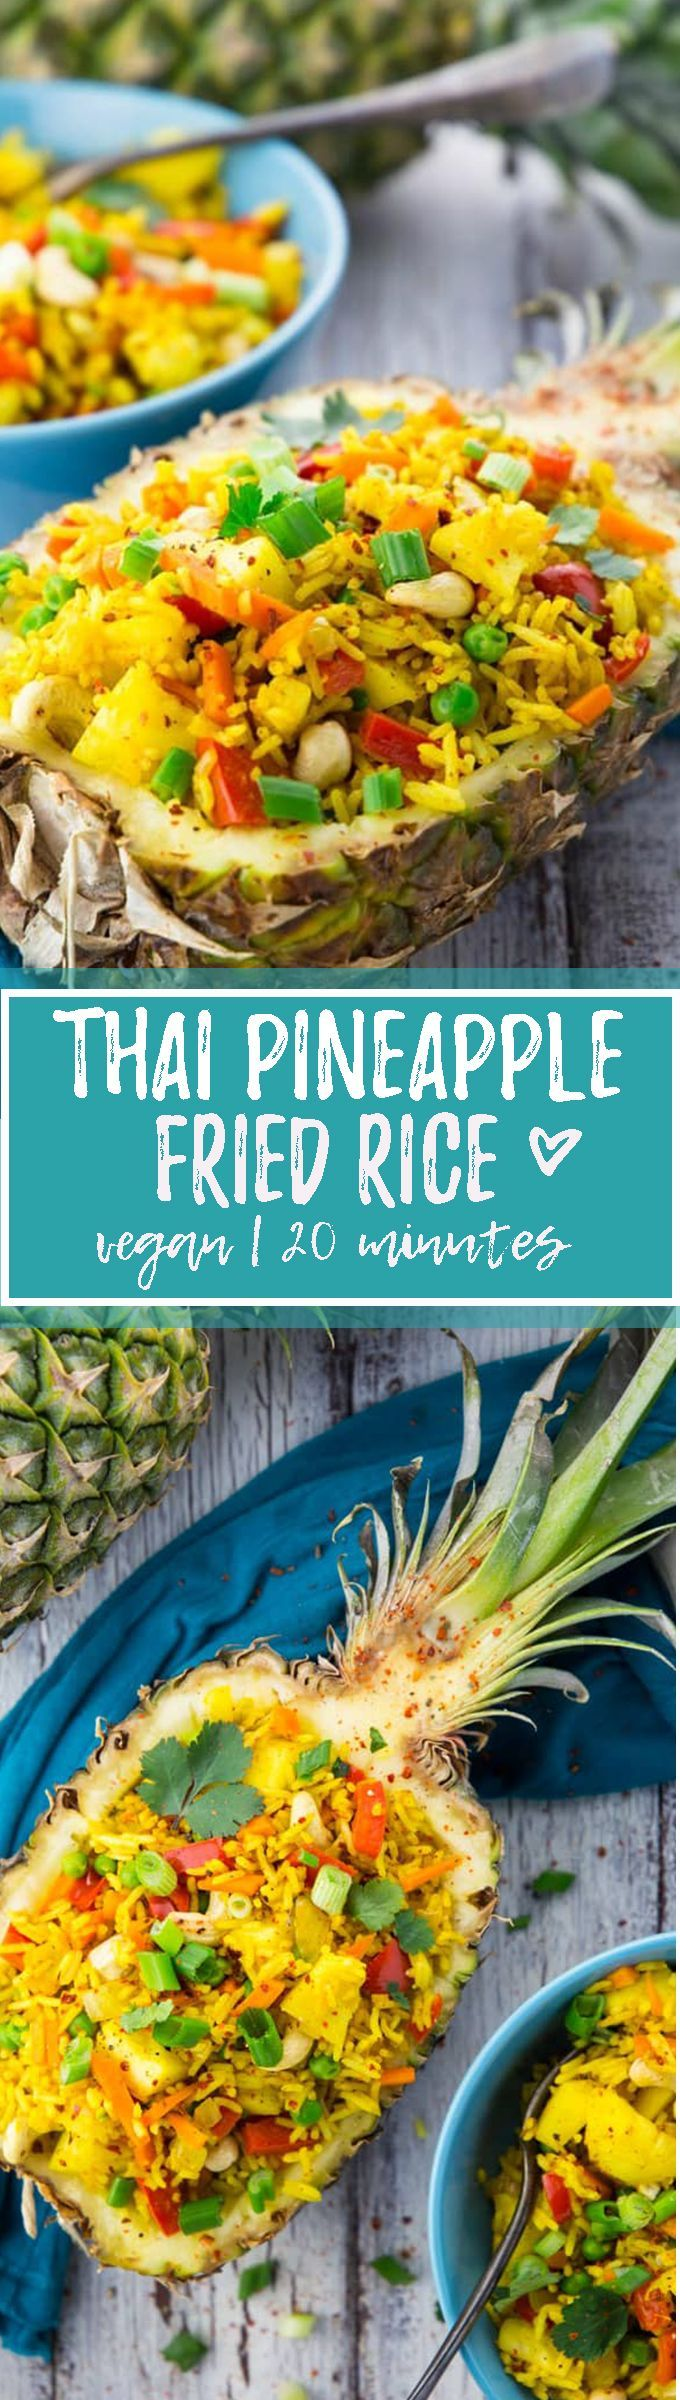 This Thai pineapple fried rice recipe couldn't be easier! It's not only super delicious and healthy, but also ready in less than 15 minutes! <3 | veganheaven.org